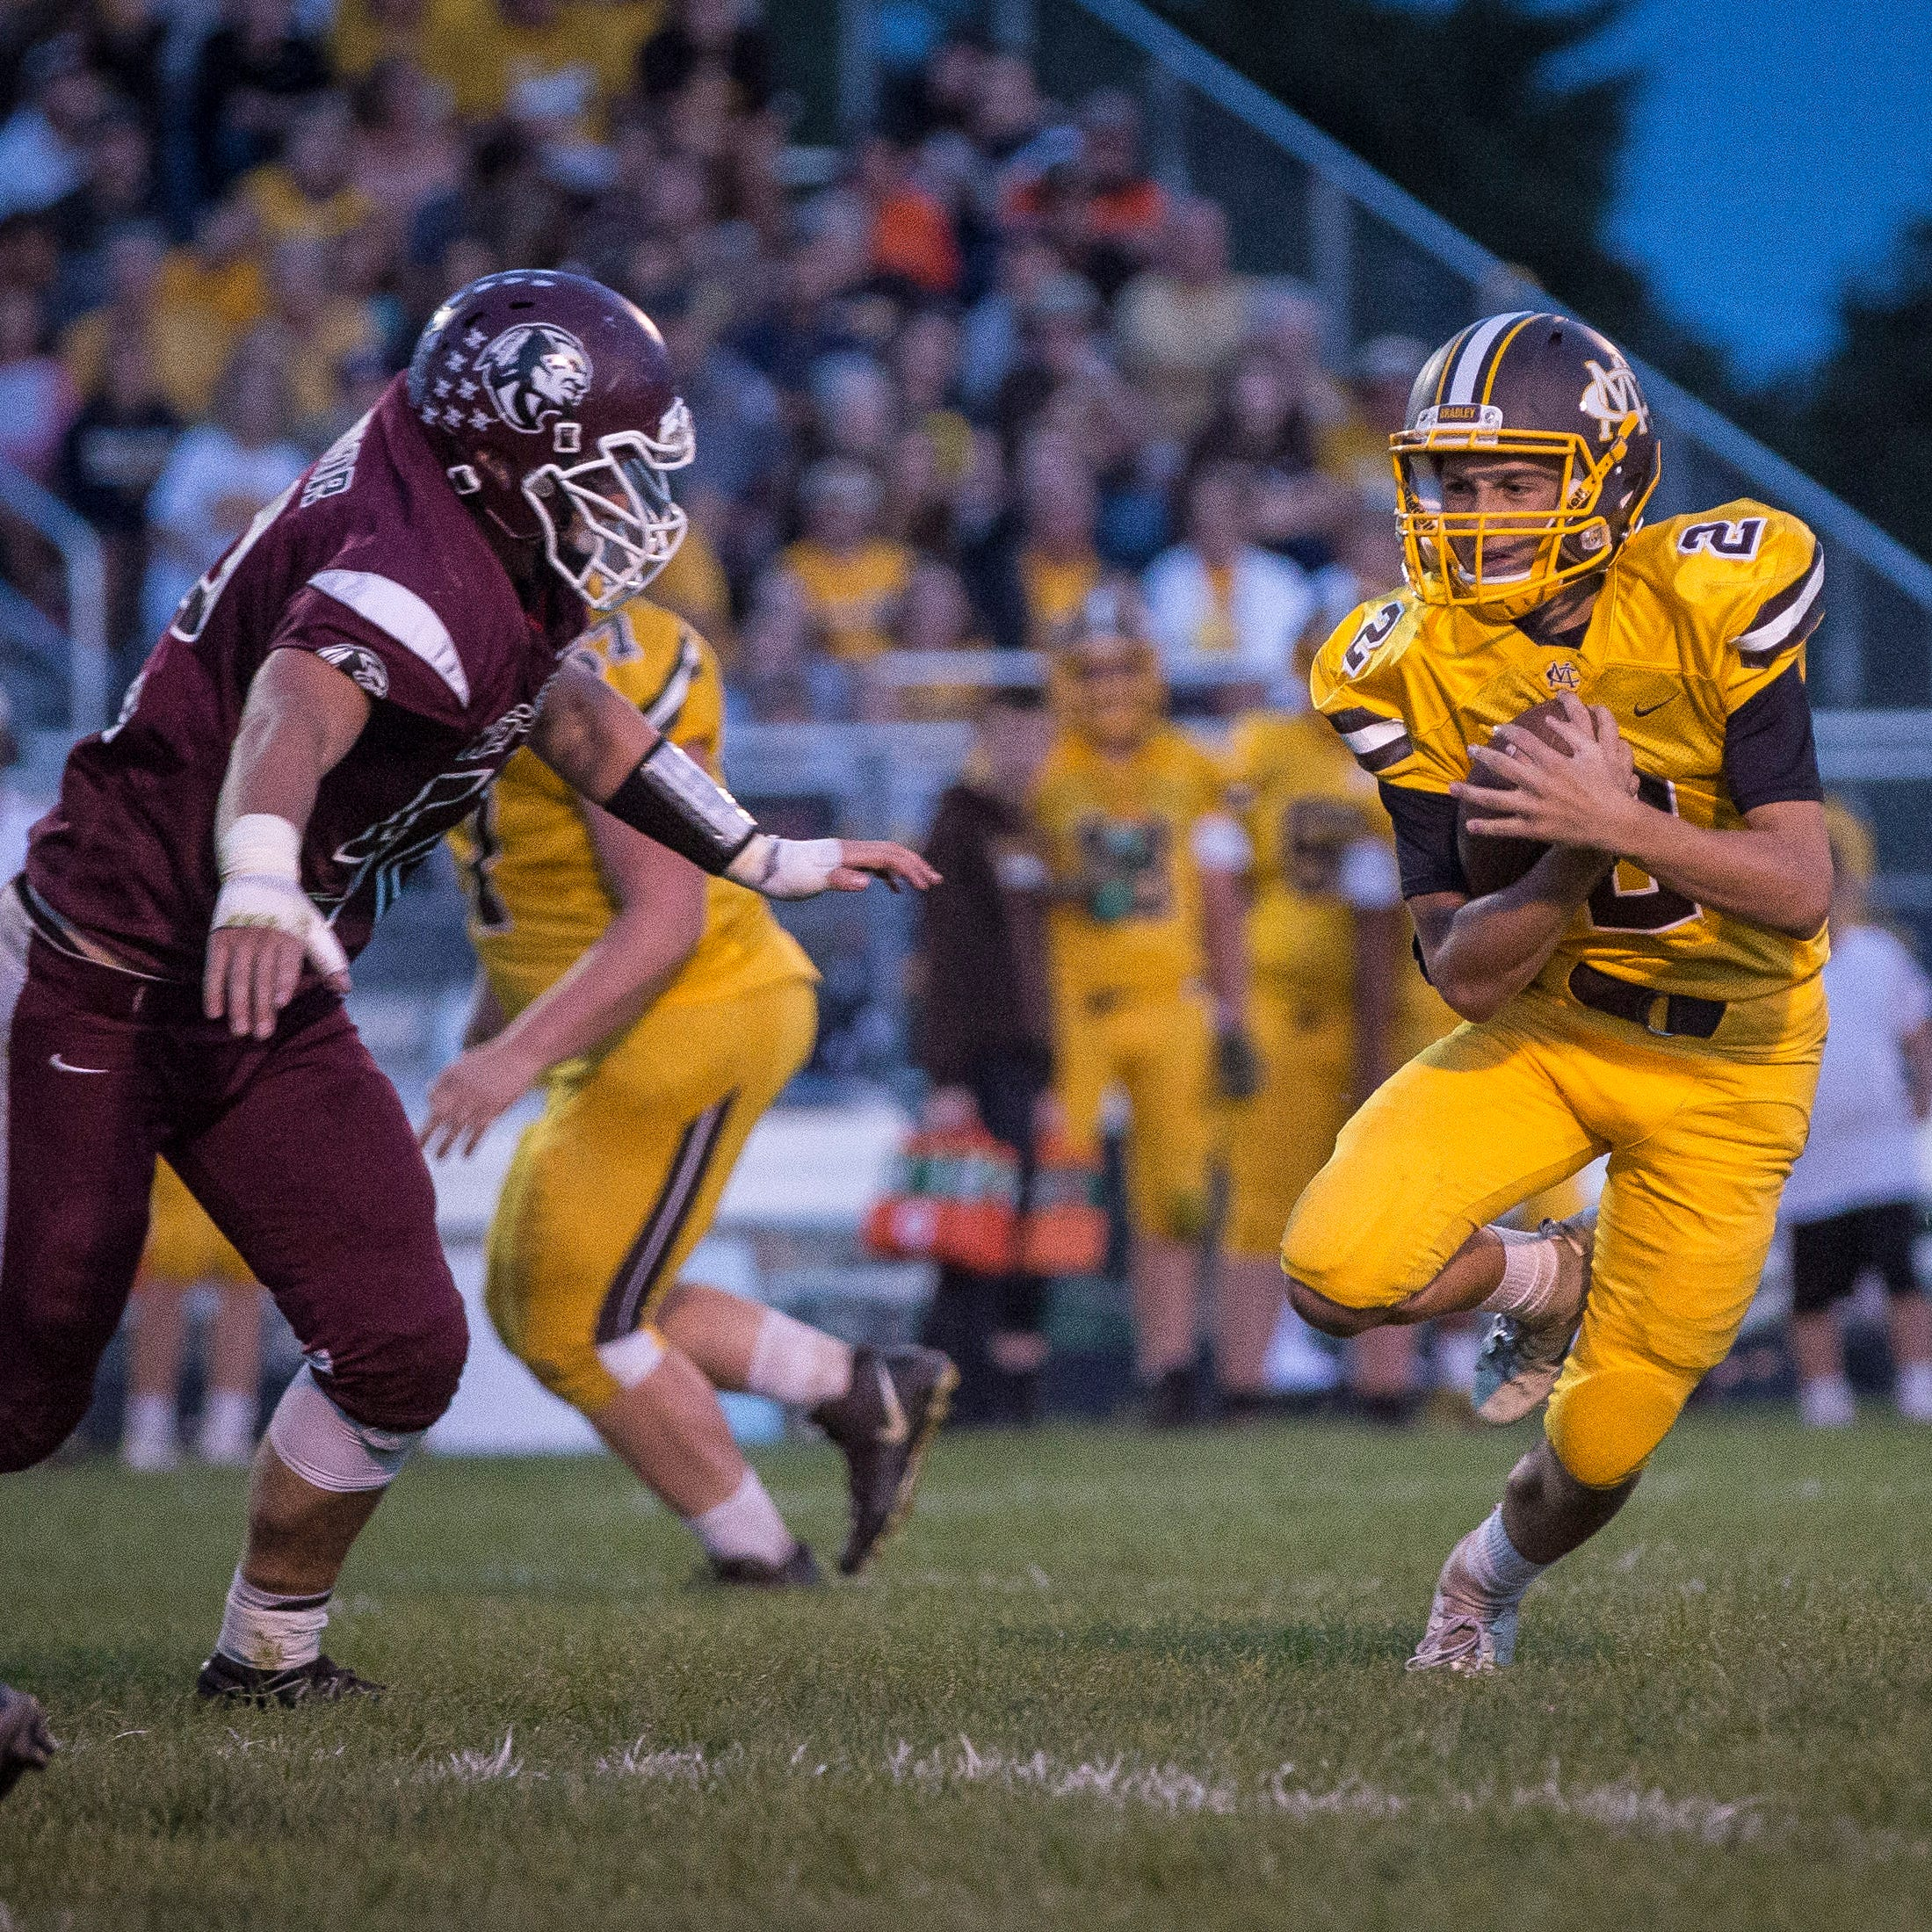 East Central Indiana high school football scores and stats from Week 6